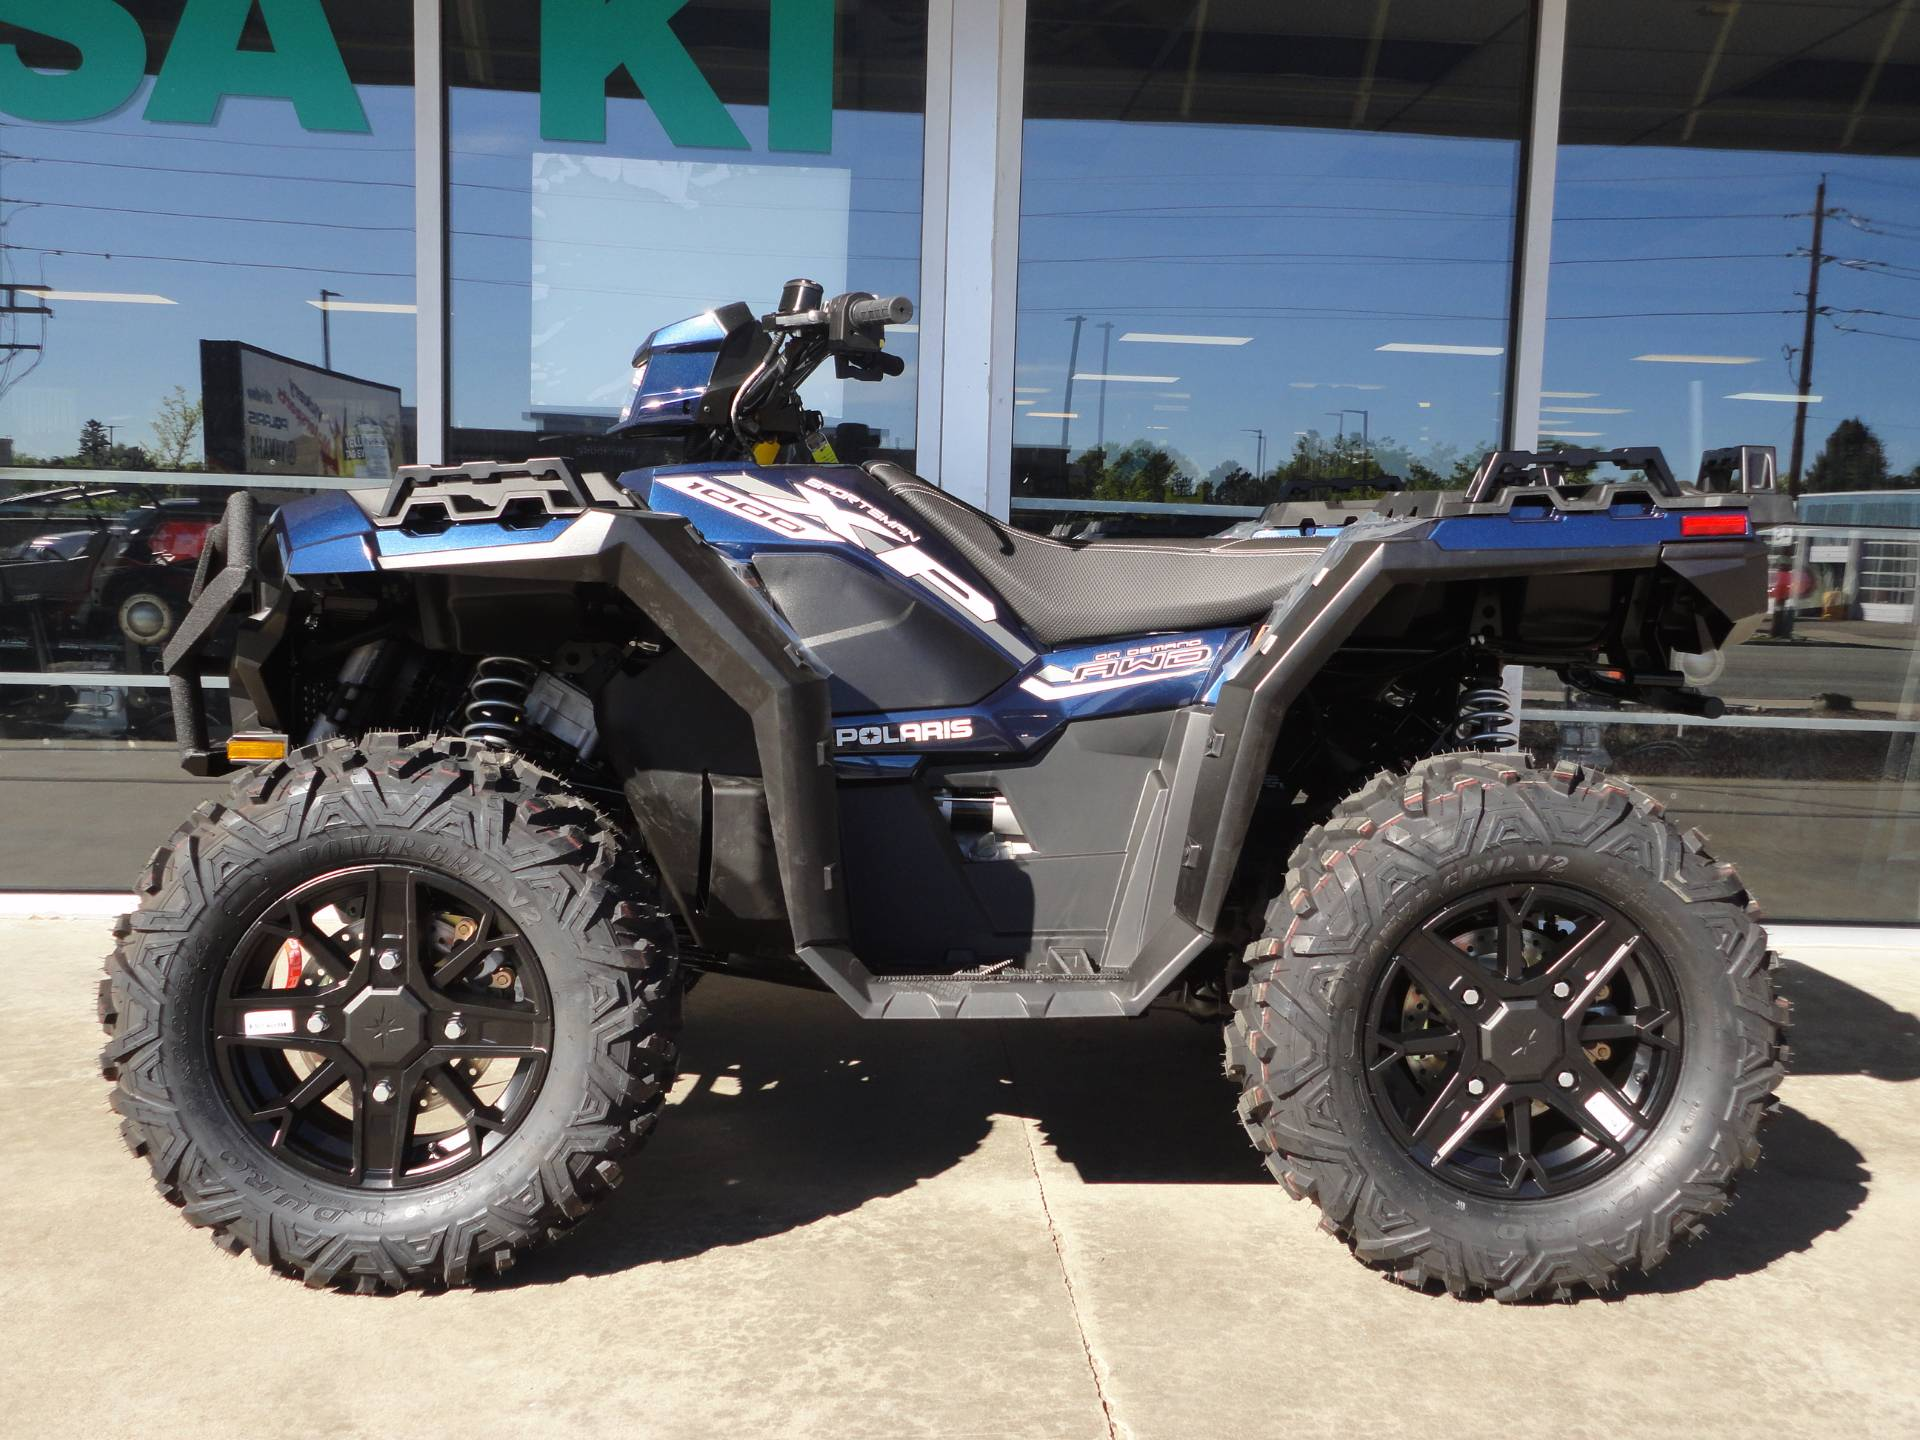 2019 Polaris Sportsman XP 1000 Premium in Denver, Colorado - Photo 2